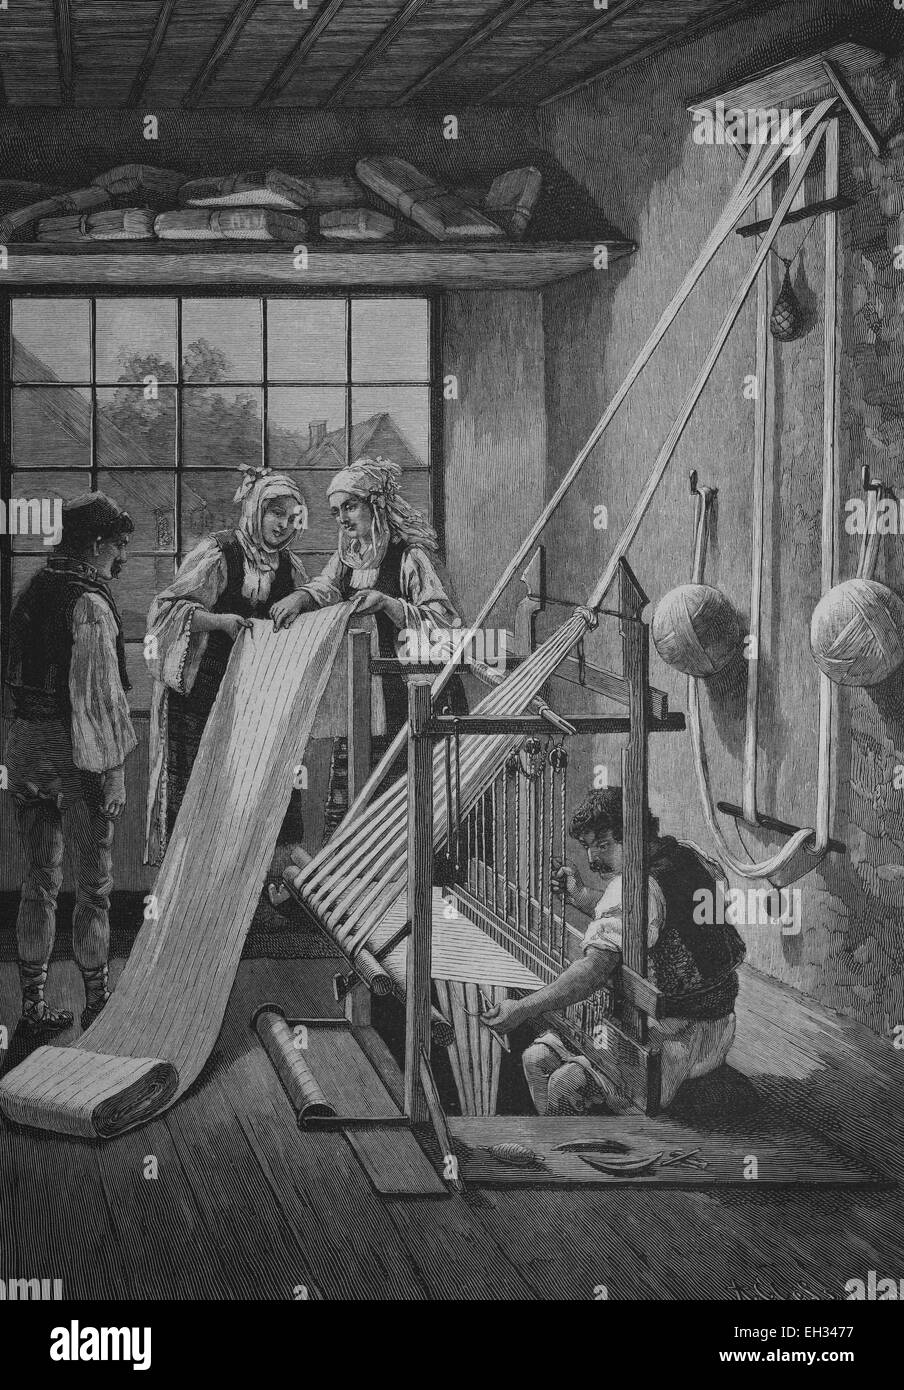 Historical engraving, loom for weaving cotton, Serbia, 1888, Europe - Stock Image